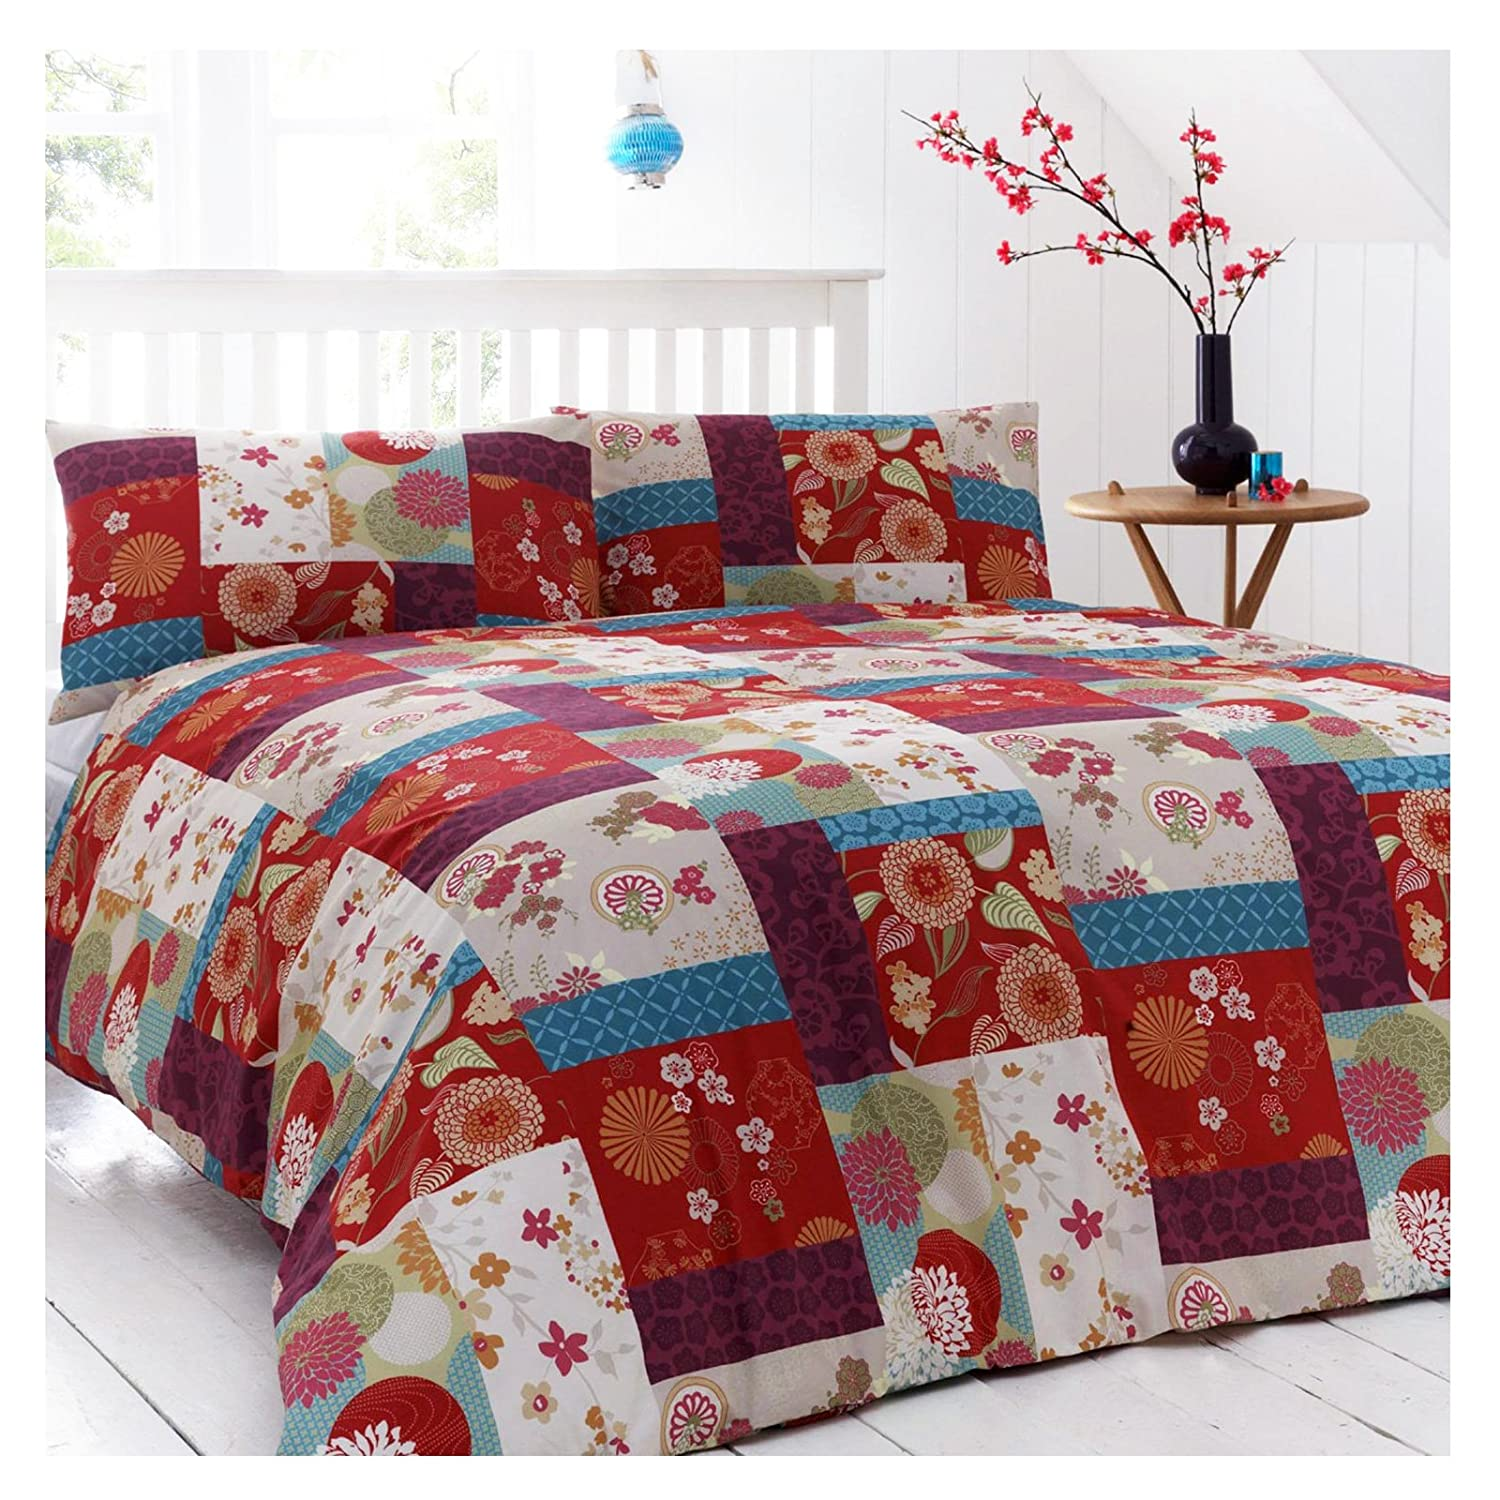 shopping bed guides mucky childrens fingers sets bedding deals cheap on twin find duvet line set patchwork cover